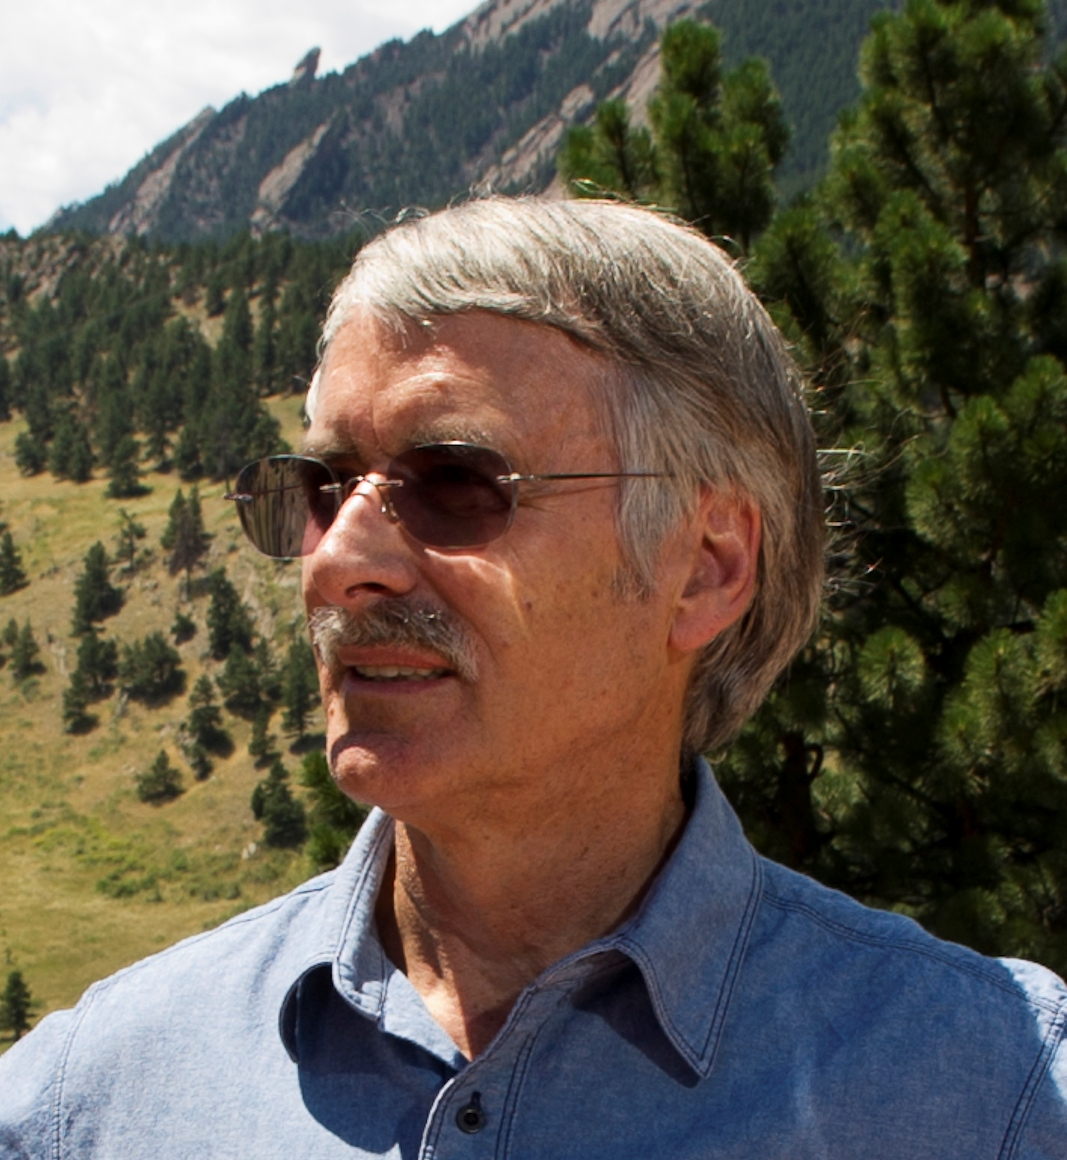 Dr. Trenberth poses in front of tree-covered mountains